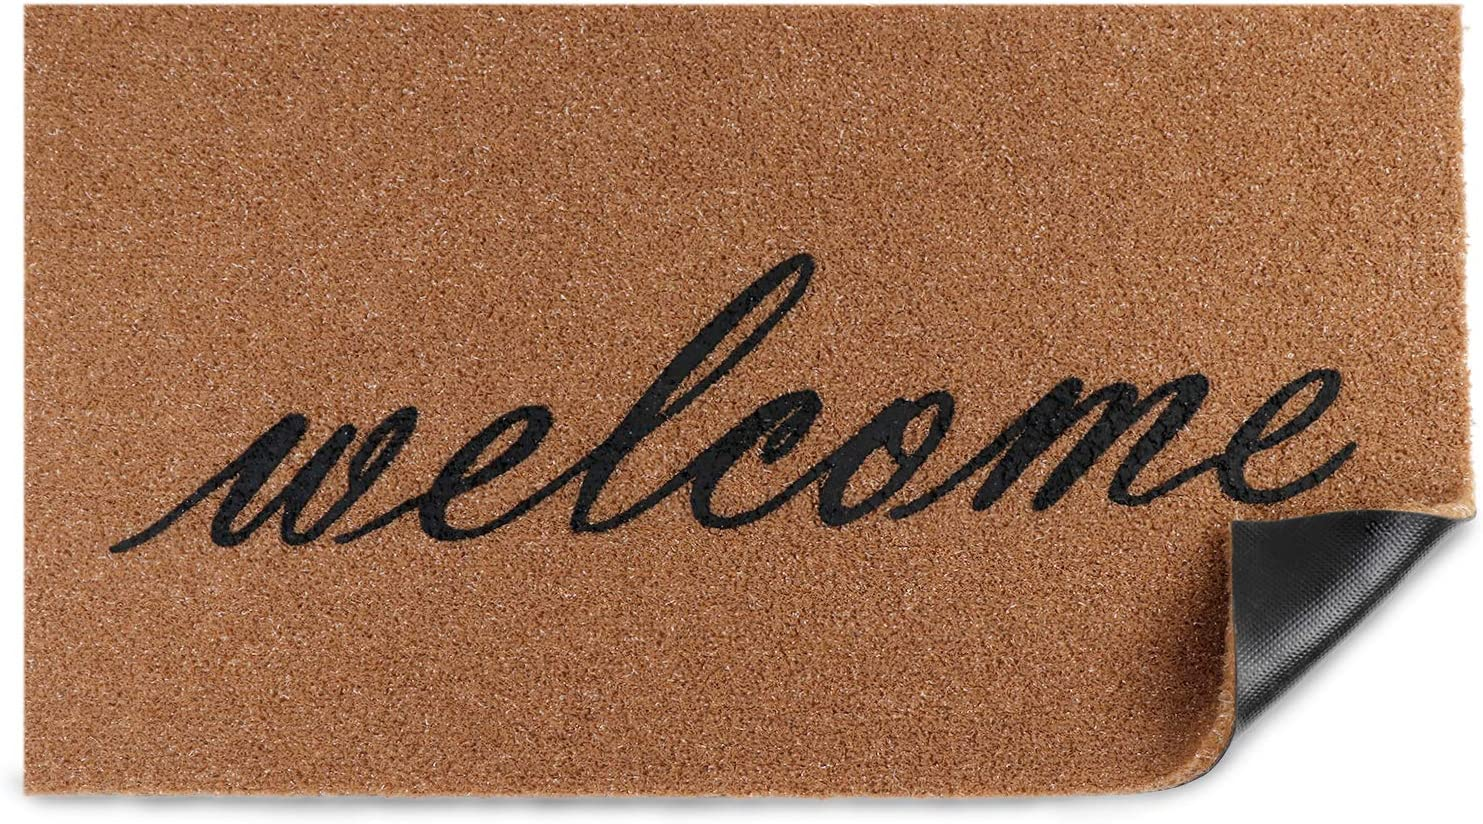 OurWarm Welcome Mats for Front Door Outdoor, Door Mats for Home Entrance Floor mat Coir Doormat for Porch Decor with Heavy-Duty PVC Backing, 30 x 17Inch Farmhouse Brown Welcome Mat Rug with Black Font